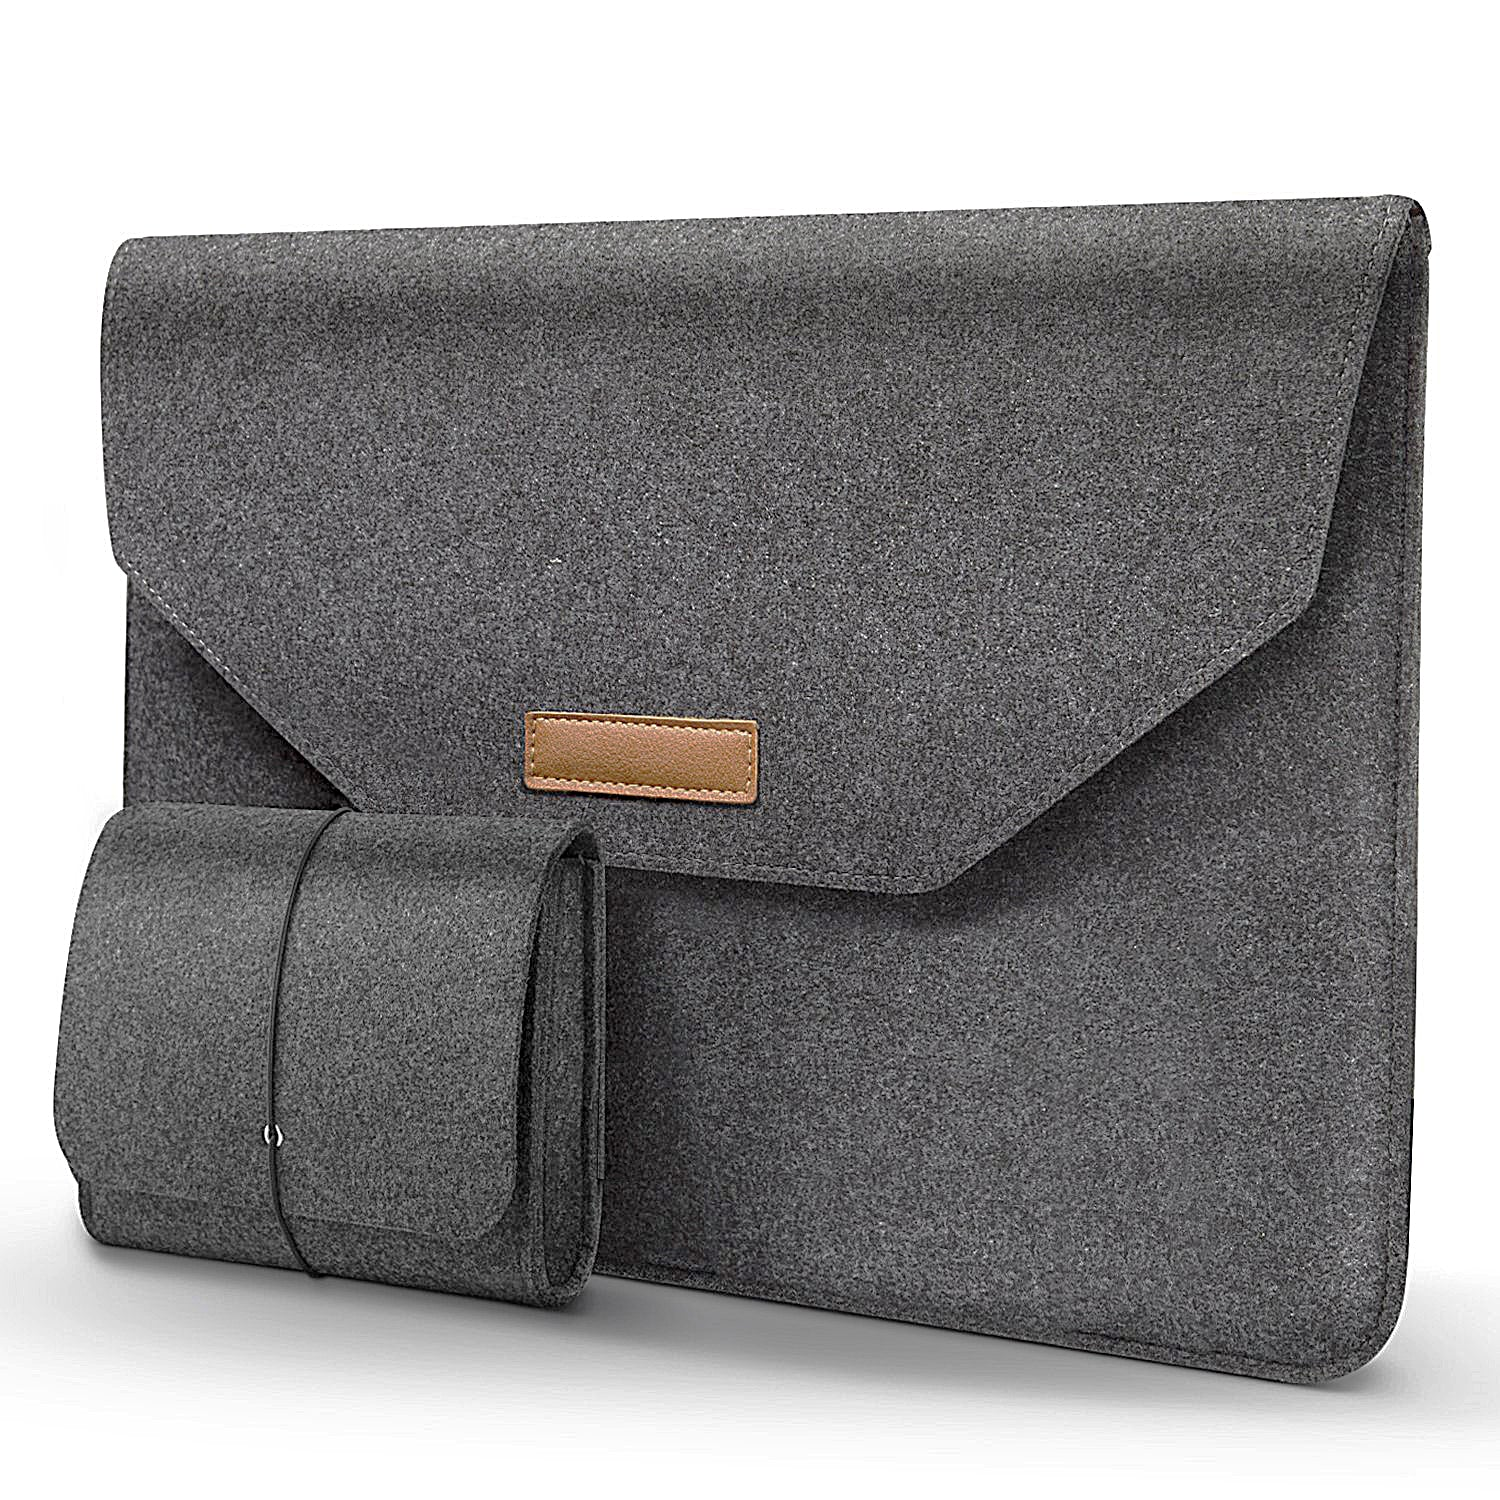 Basics Felt Sleeve with Storage Pouch for Apple 15 MacBook Pro / 15 MacBook Pro with Retina and Most Popular 15-15.5 Inch Macbooks/Laptops/Notebooks - Mobizang